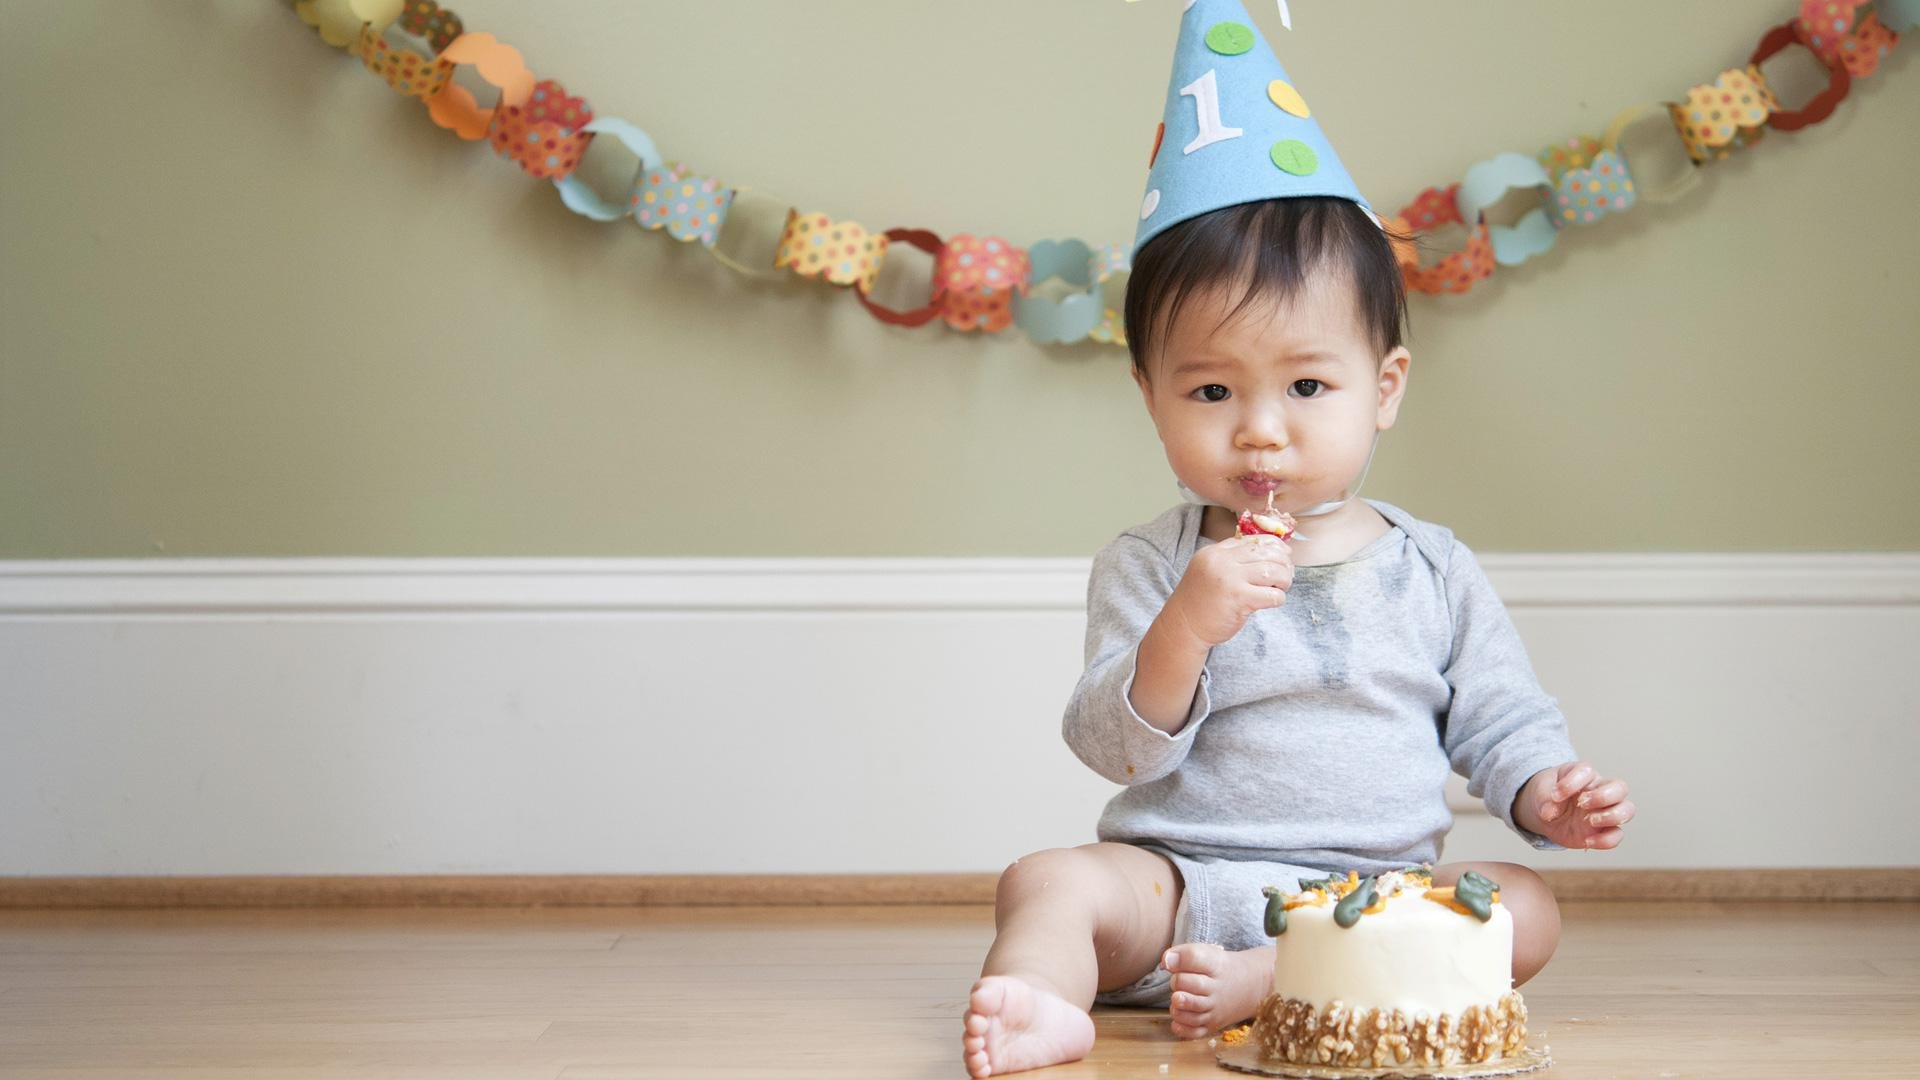 Real moms share: What did you do for baby's first birthday?